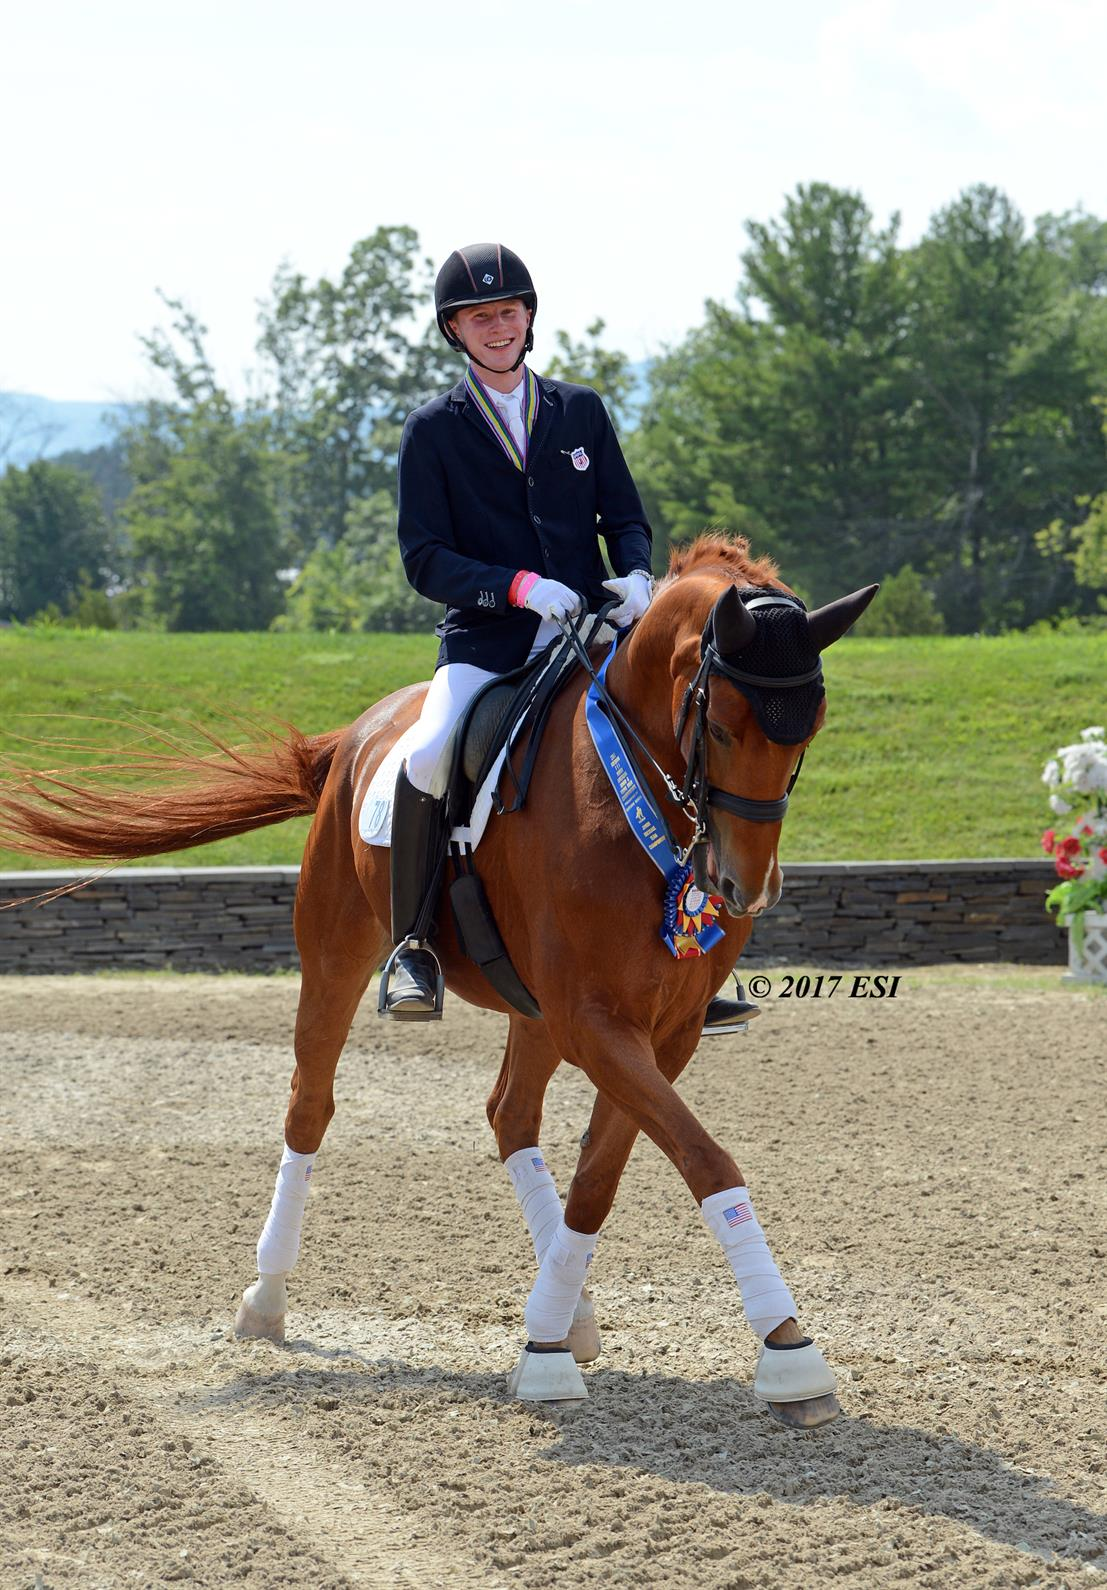 Us Equestrian Announces Athletes Selected For The 2018